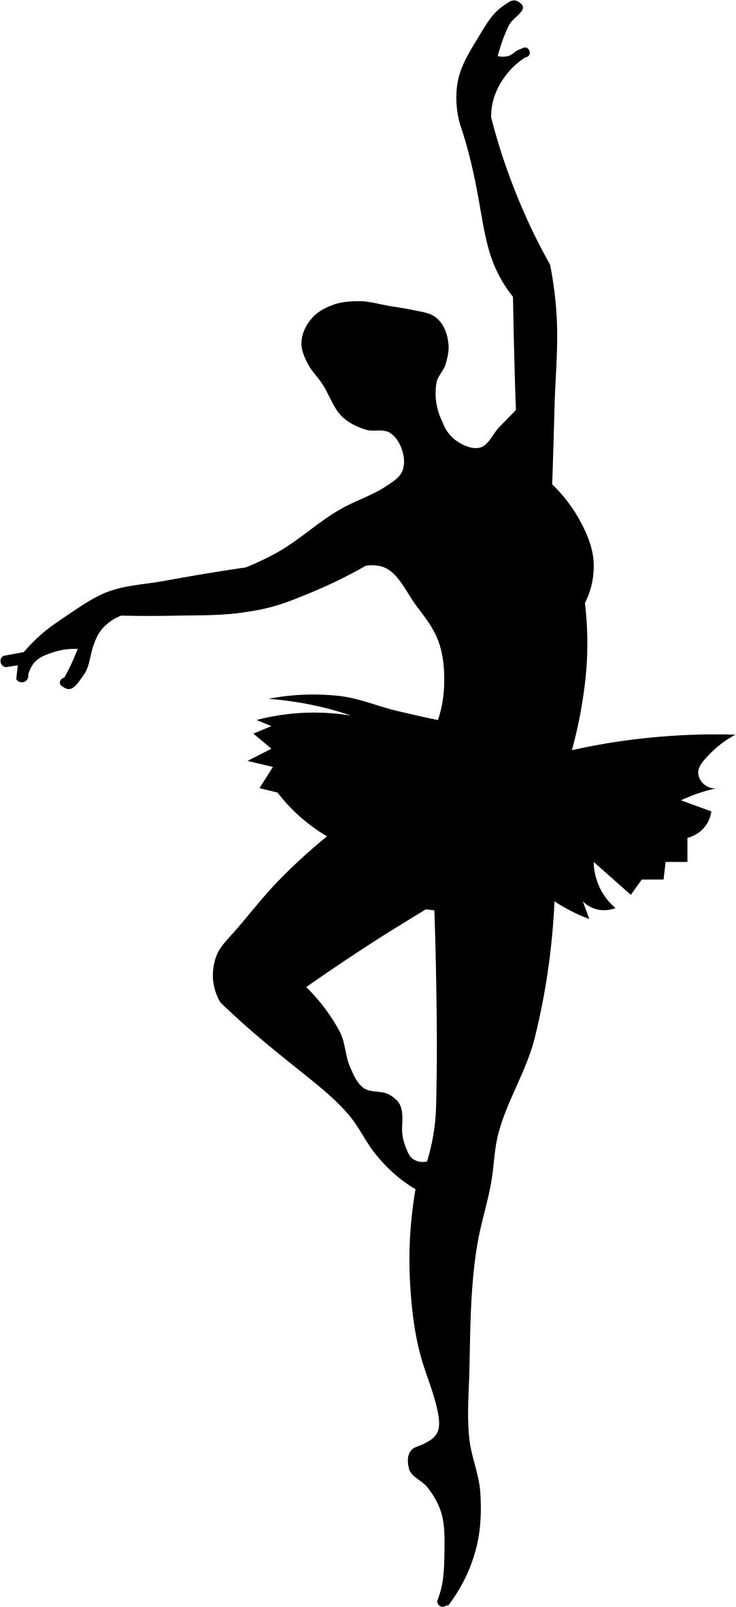 736x1607 265 Best Silhouettes Images On Silhouettes, Silhouette